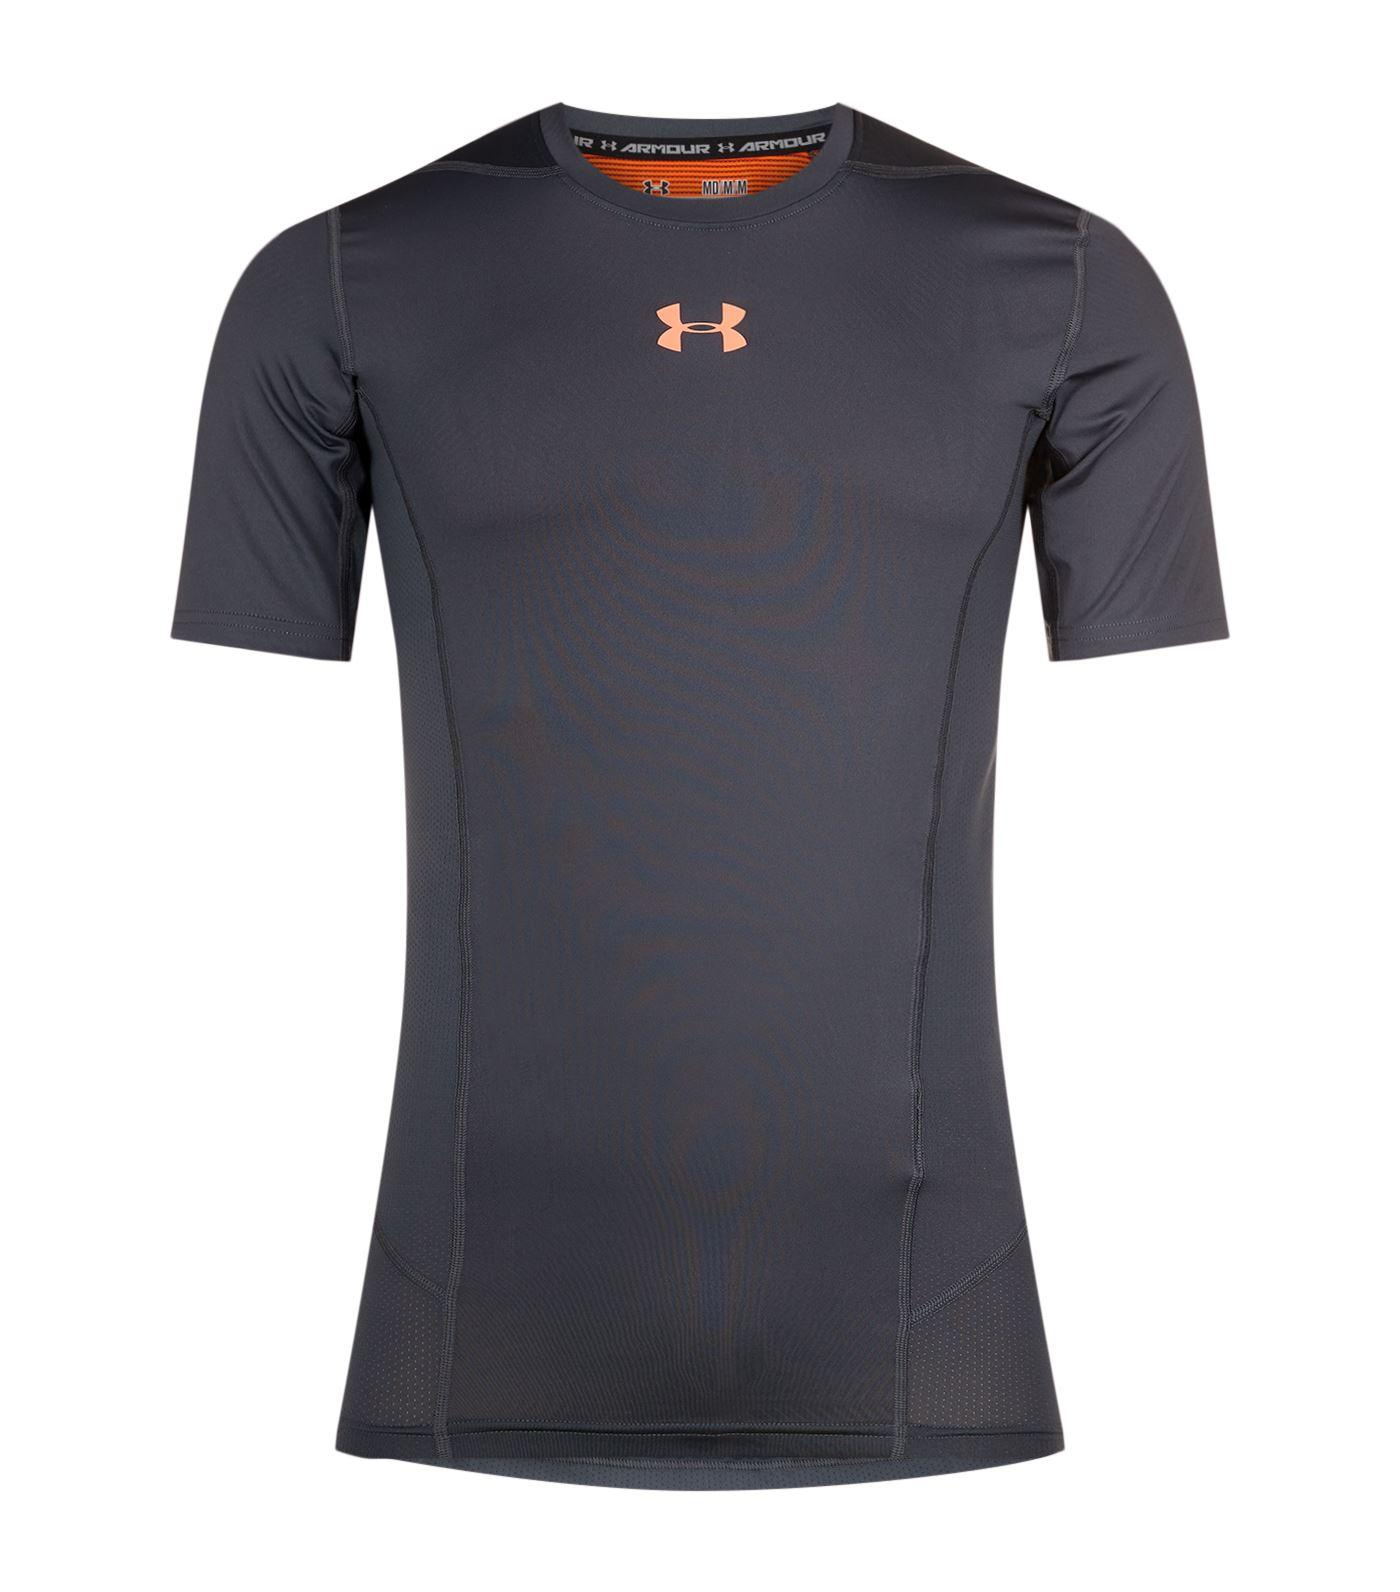 Lyst under armour supervent shirt in gray for men for Gray under armour shirt